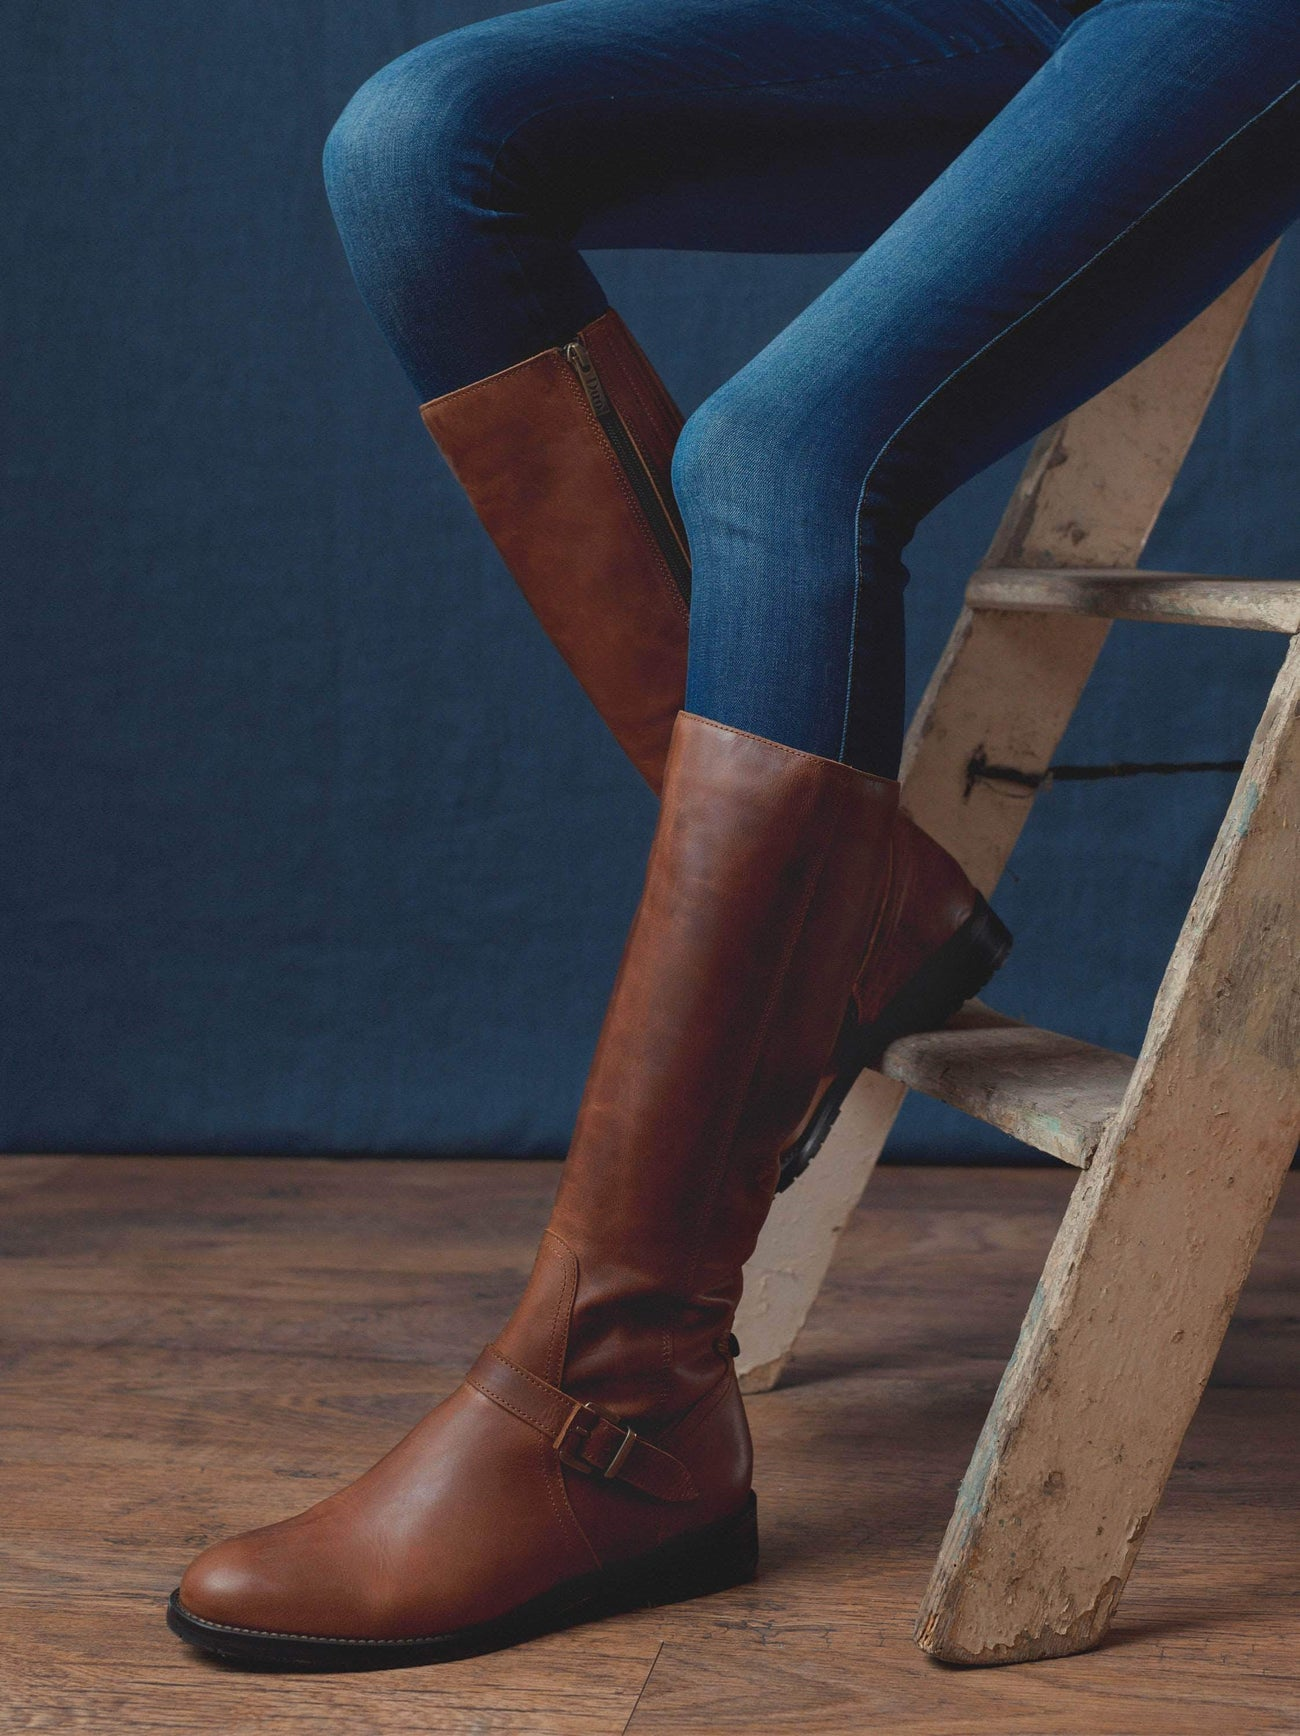 Sherwoord, a knee high boot with detailed with a brown buckled strap over the neatly cut ankle.